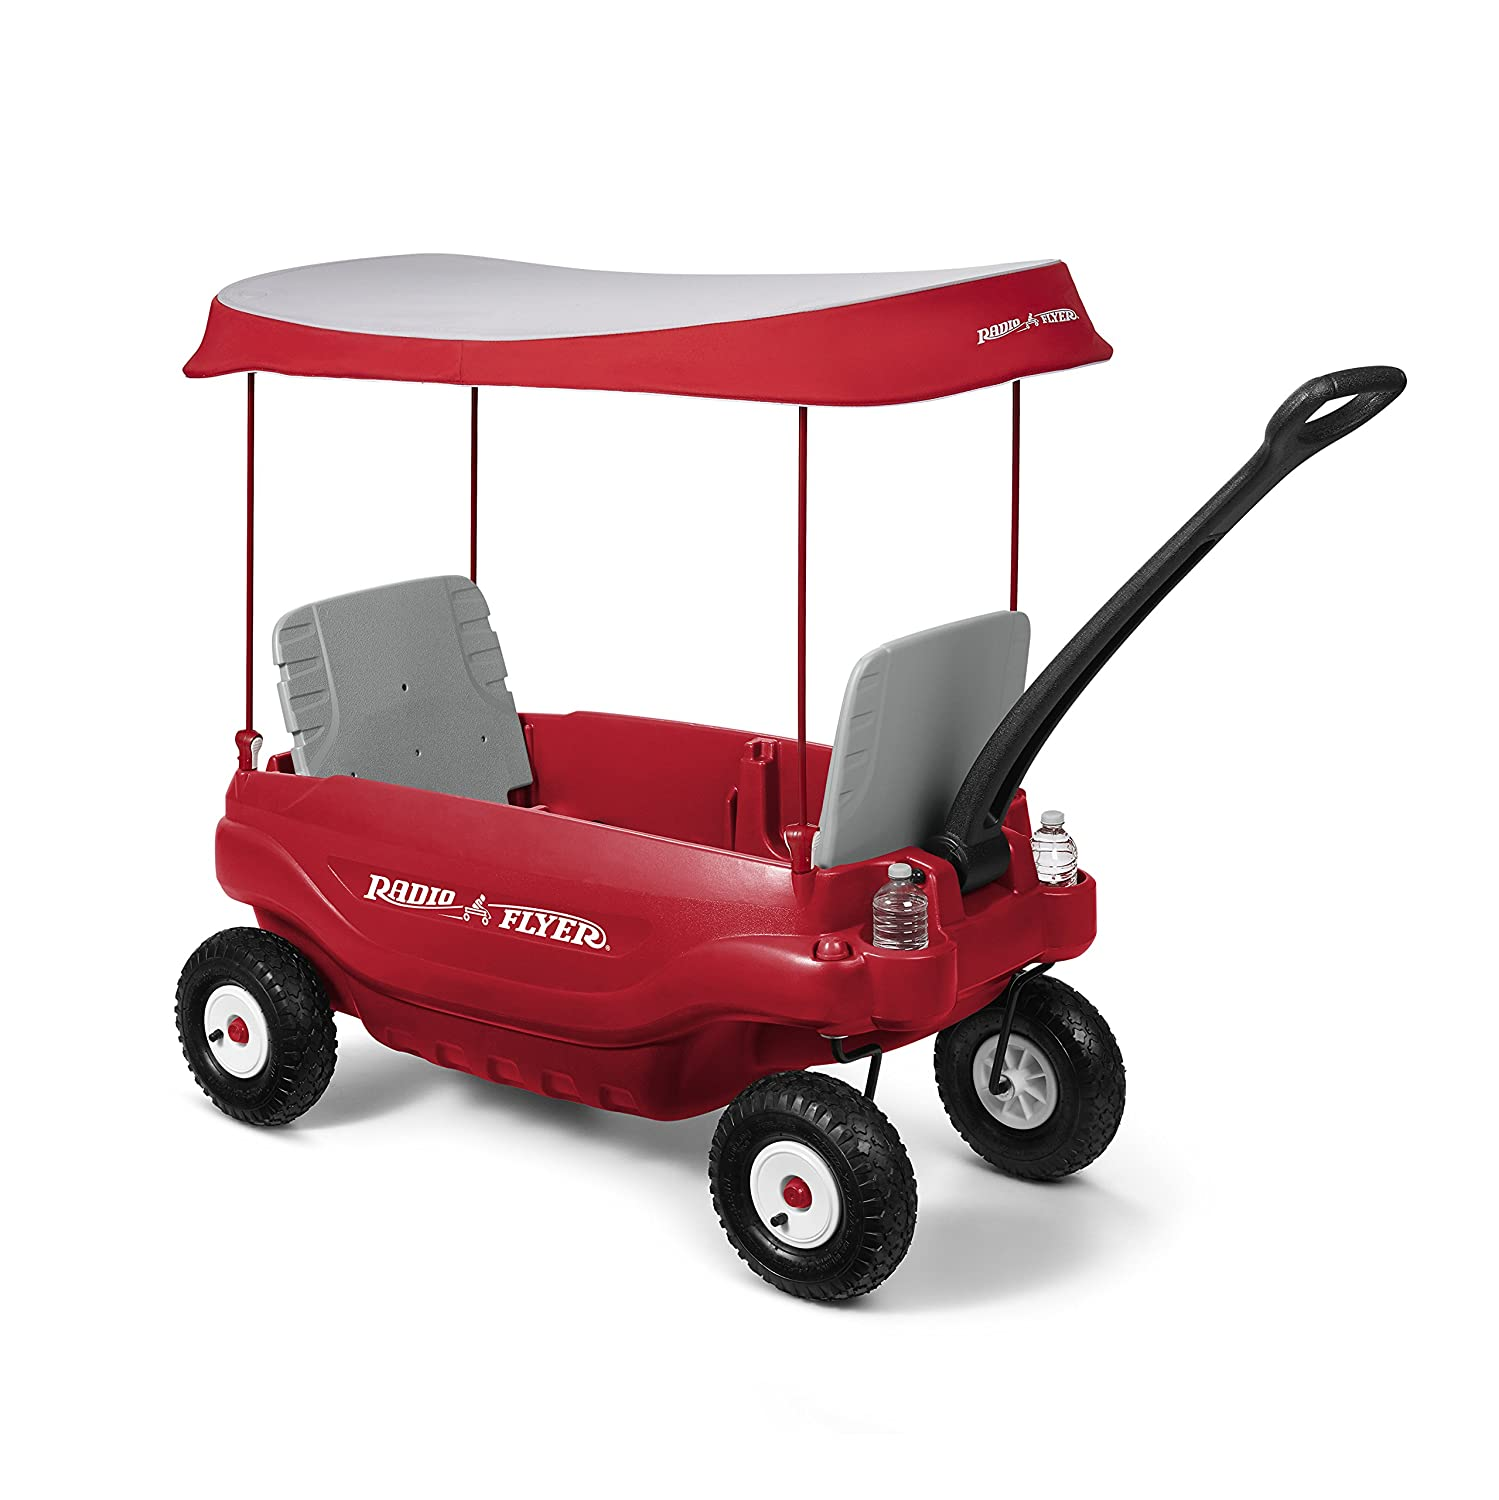 Top 10 Best Wagons for Kids Reviews in 2020 1